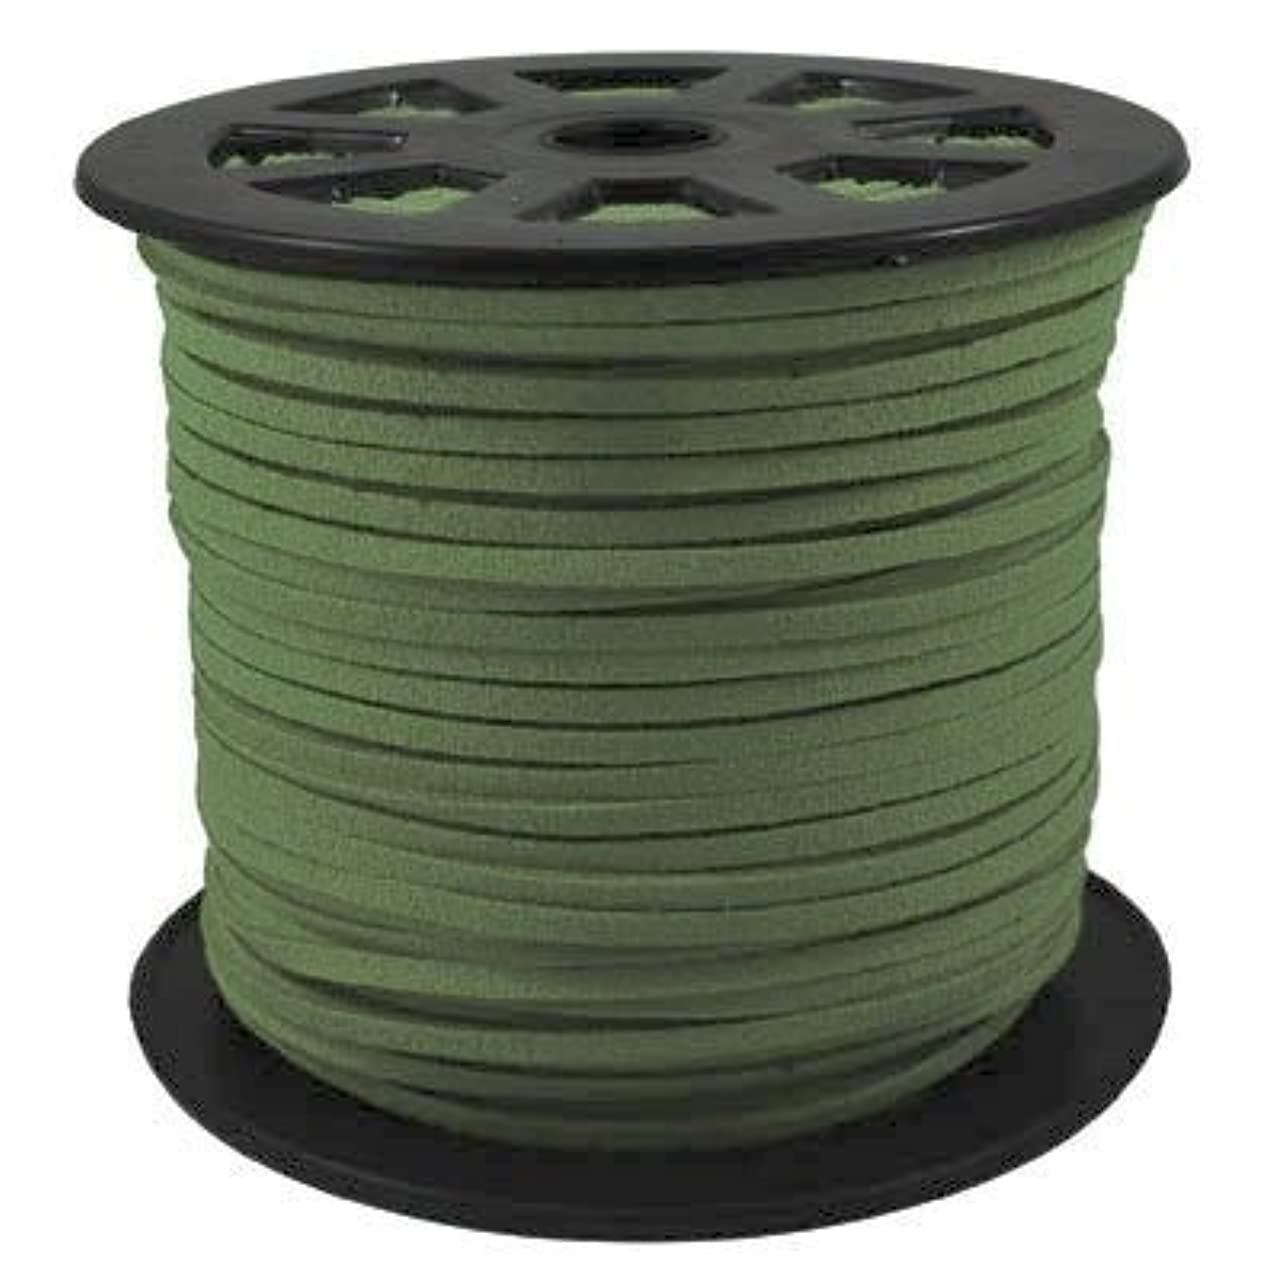 BeadsTreasure Dark Green Suede Cord Lace Leather Cord For Jewelry Making 3x1.5 mm-20 Feet.